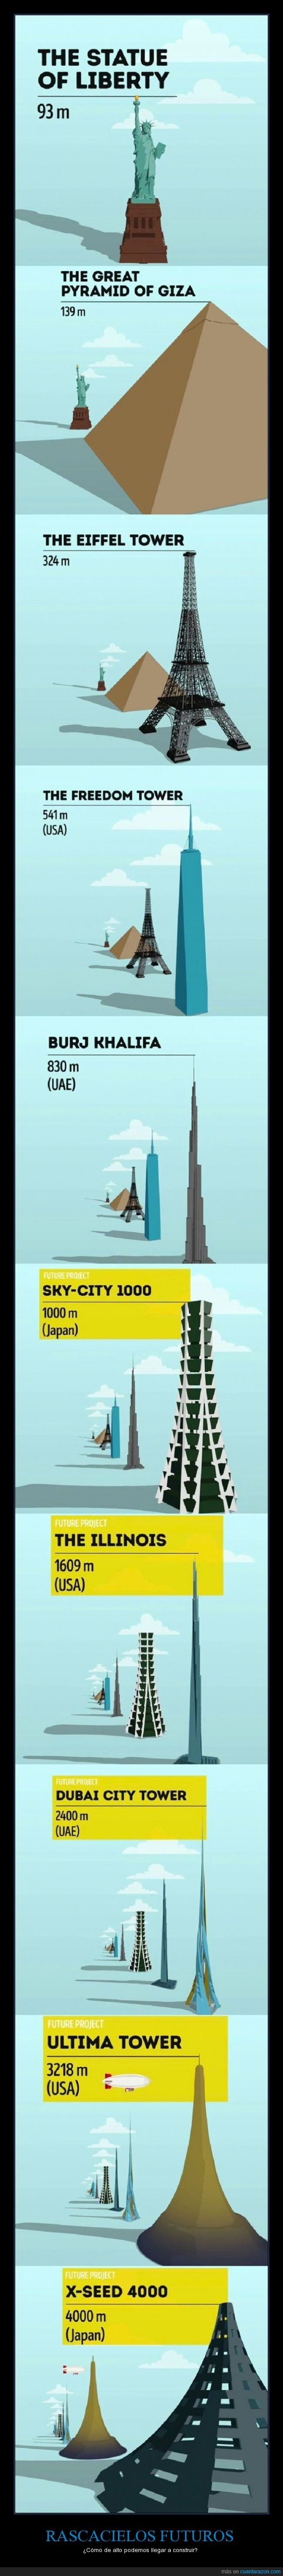 4000,edificio,rascacielos,torre,ultima tower